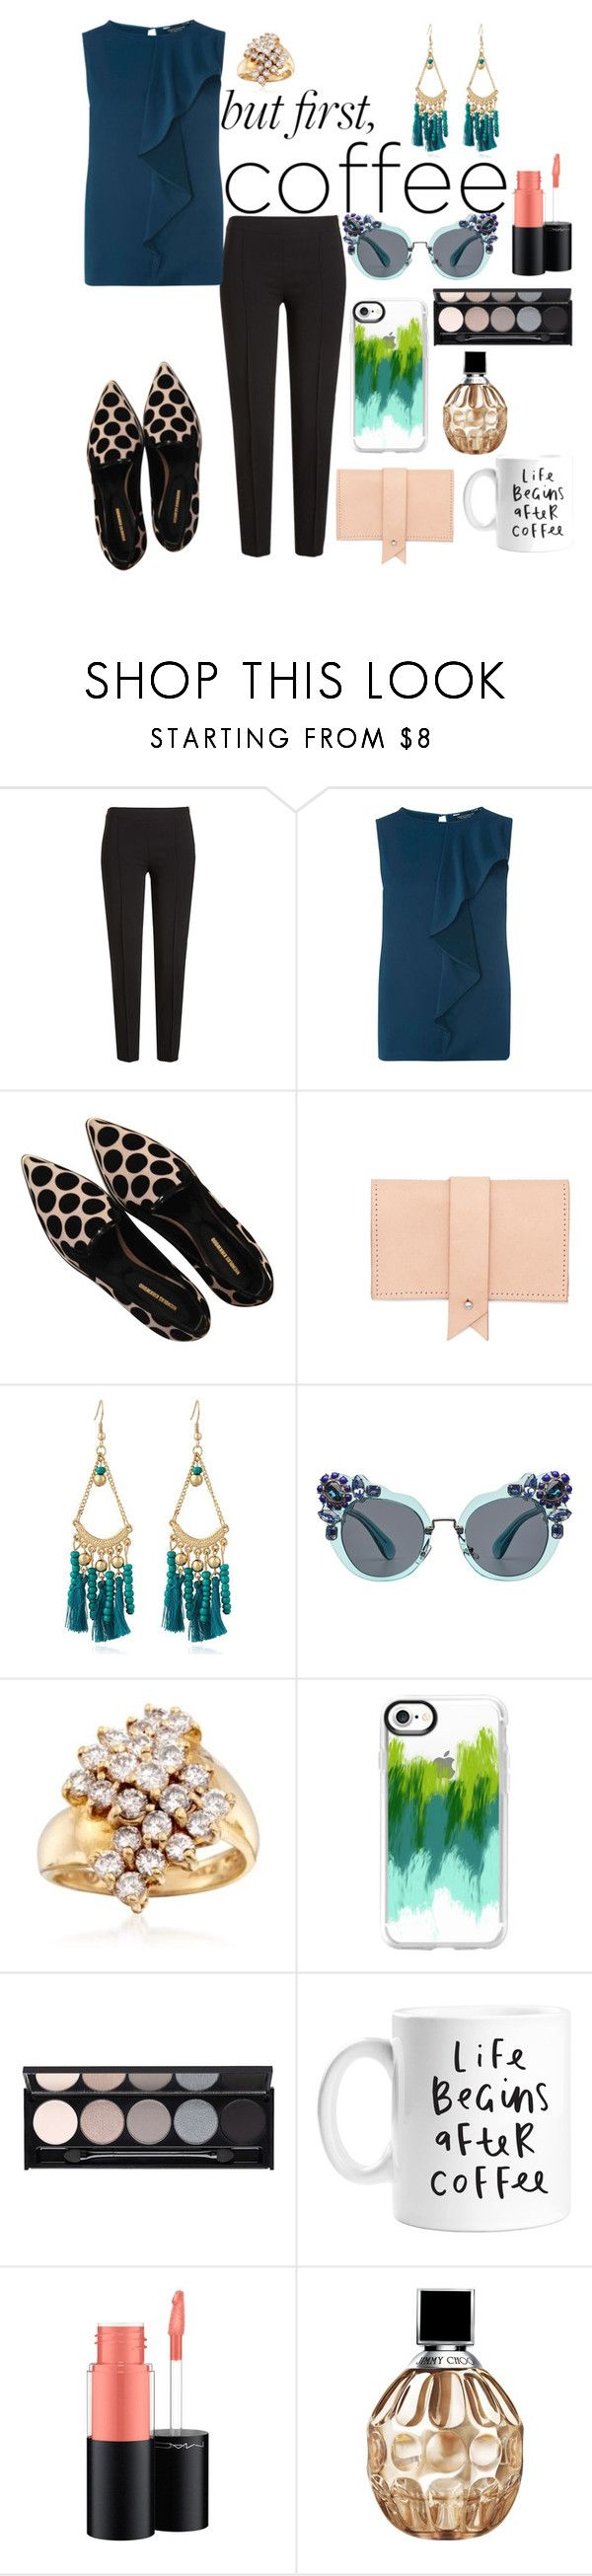 """""""Untitled #699"""" by mamatoodie-1 ❤ liked on Polyvore featuring Boutique Moschino, Dorothy Perkins, Nicholas Kirkwood, Dora, Miu Miu, Ross-Simons, Casetify, Witchery, MAC Cosmetics and Jimmy Choo"""